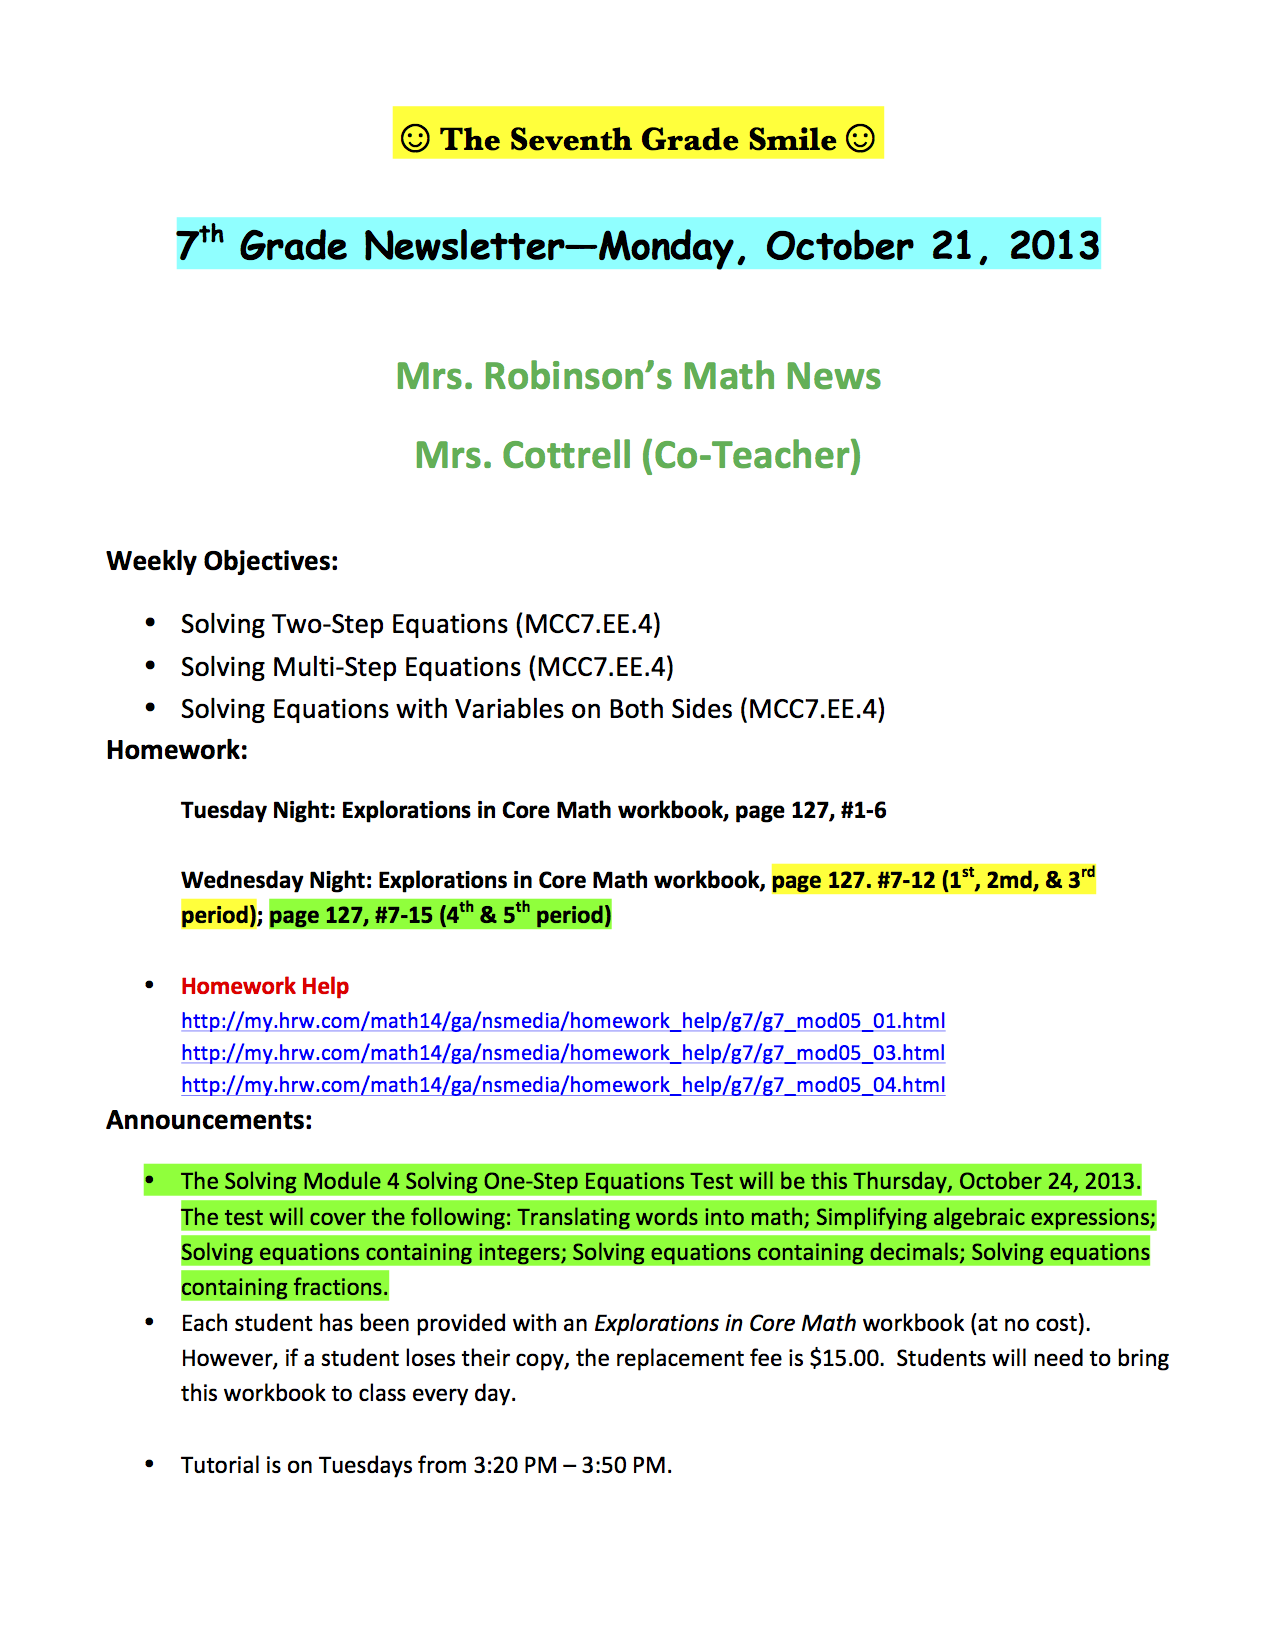 Newsletter for October 21a.png